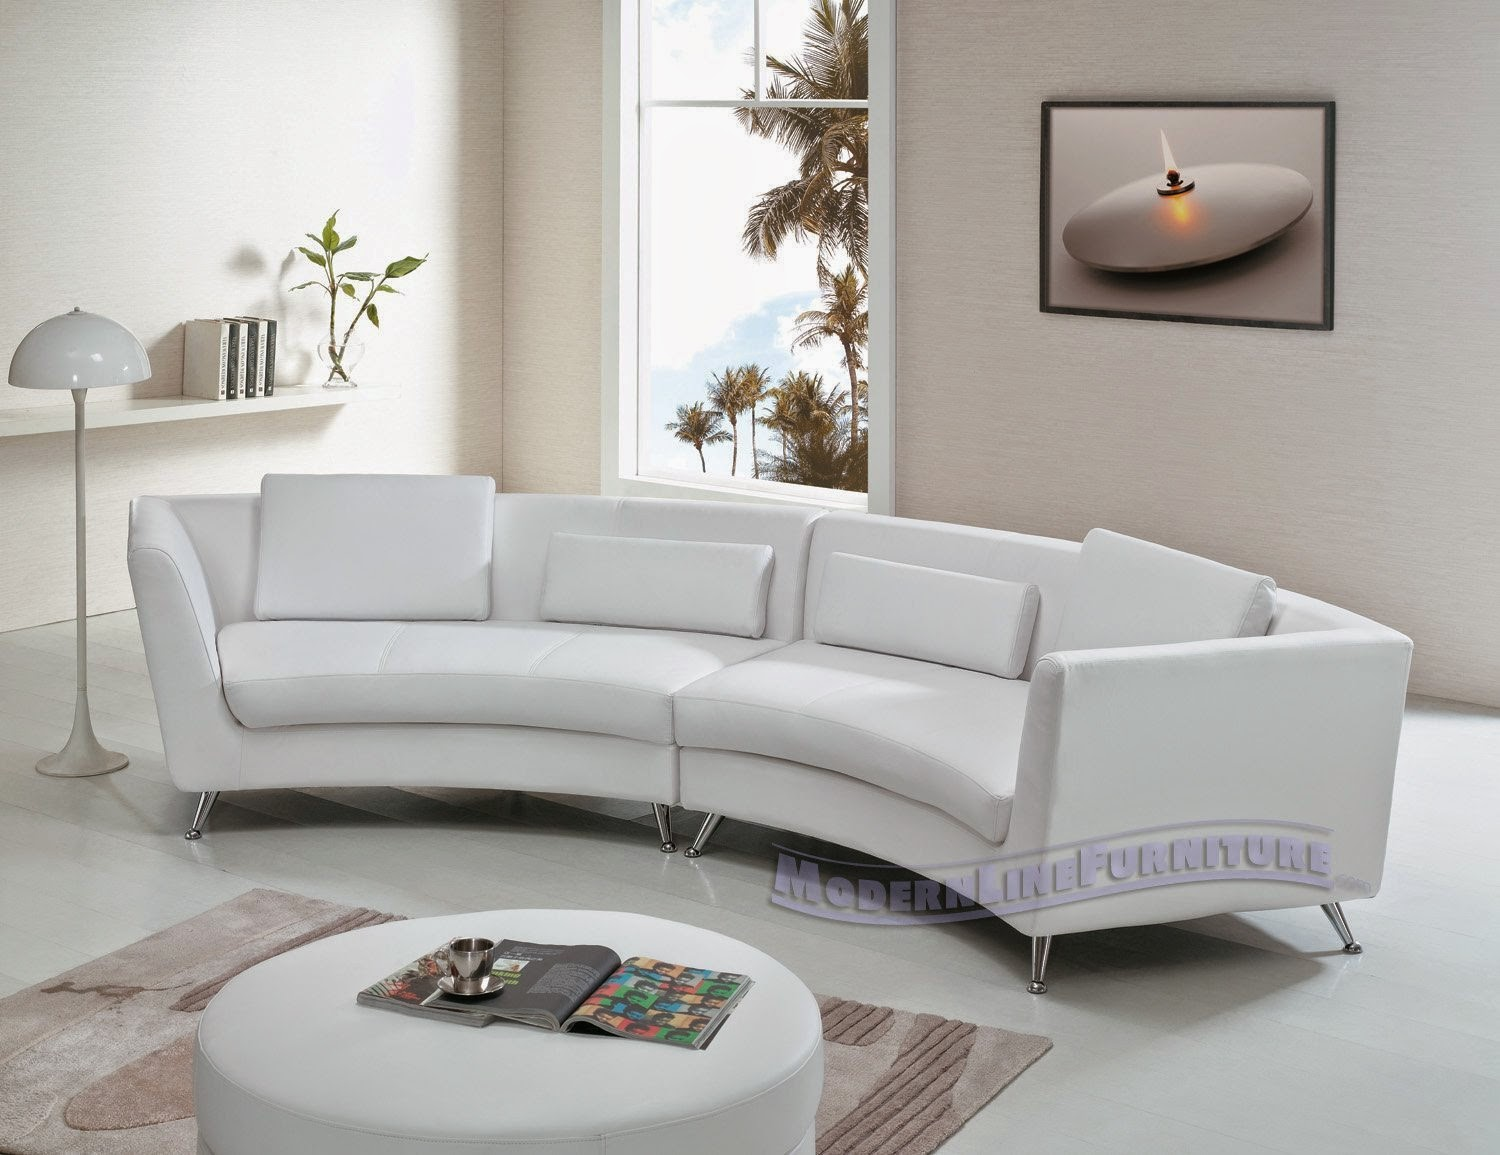 White Curved Sectional Sofa Luxury Sofas New York For Sale Back